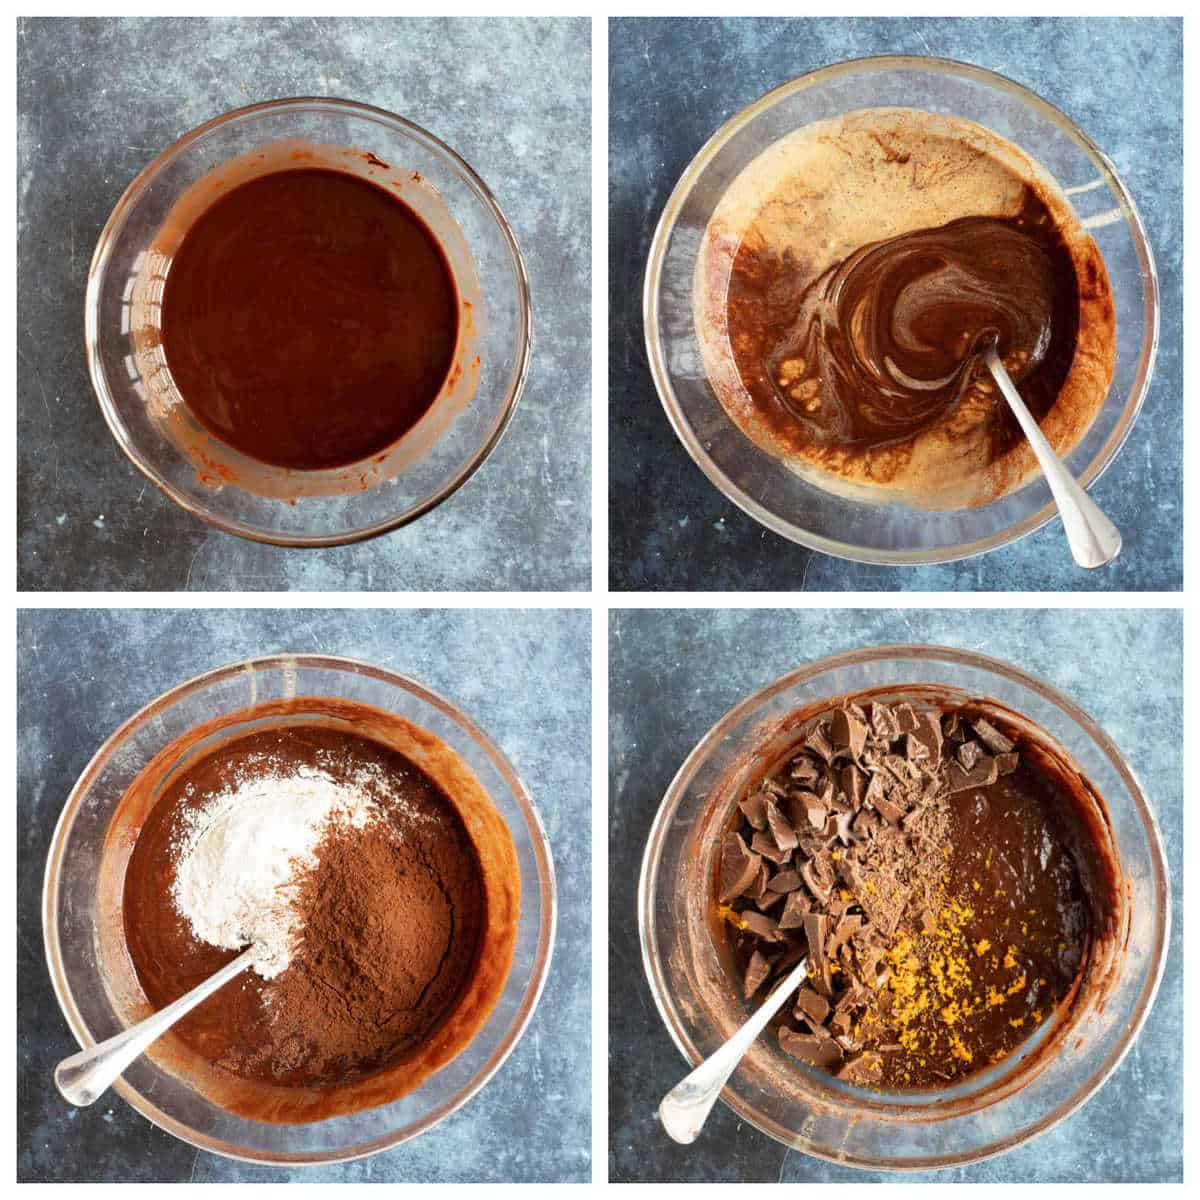 Step by step photo instruction collage for making the Terry's chocolate orange brownies.